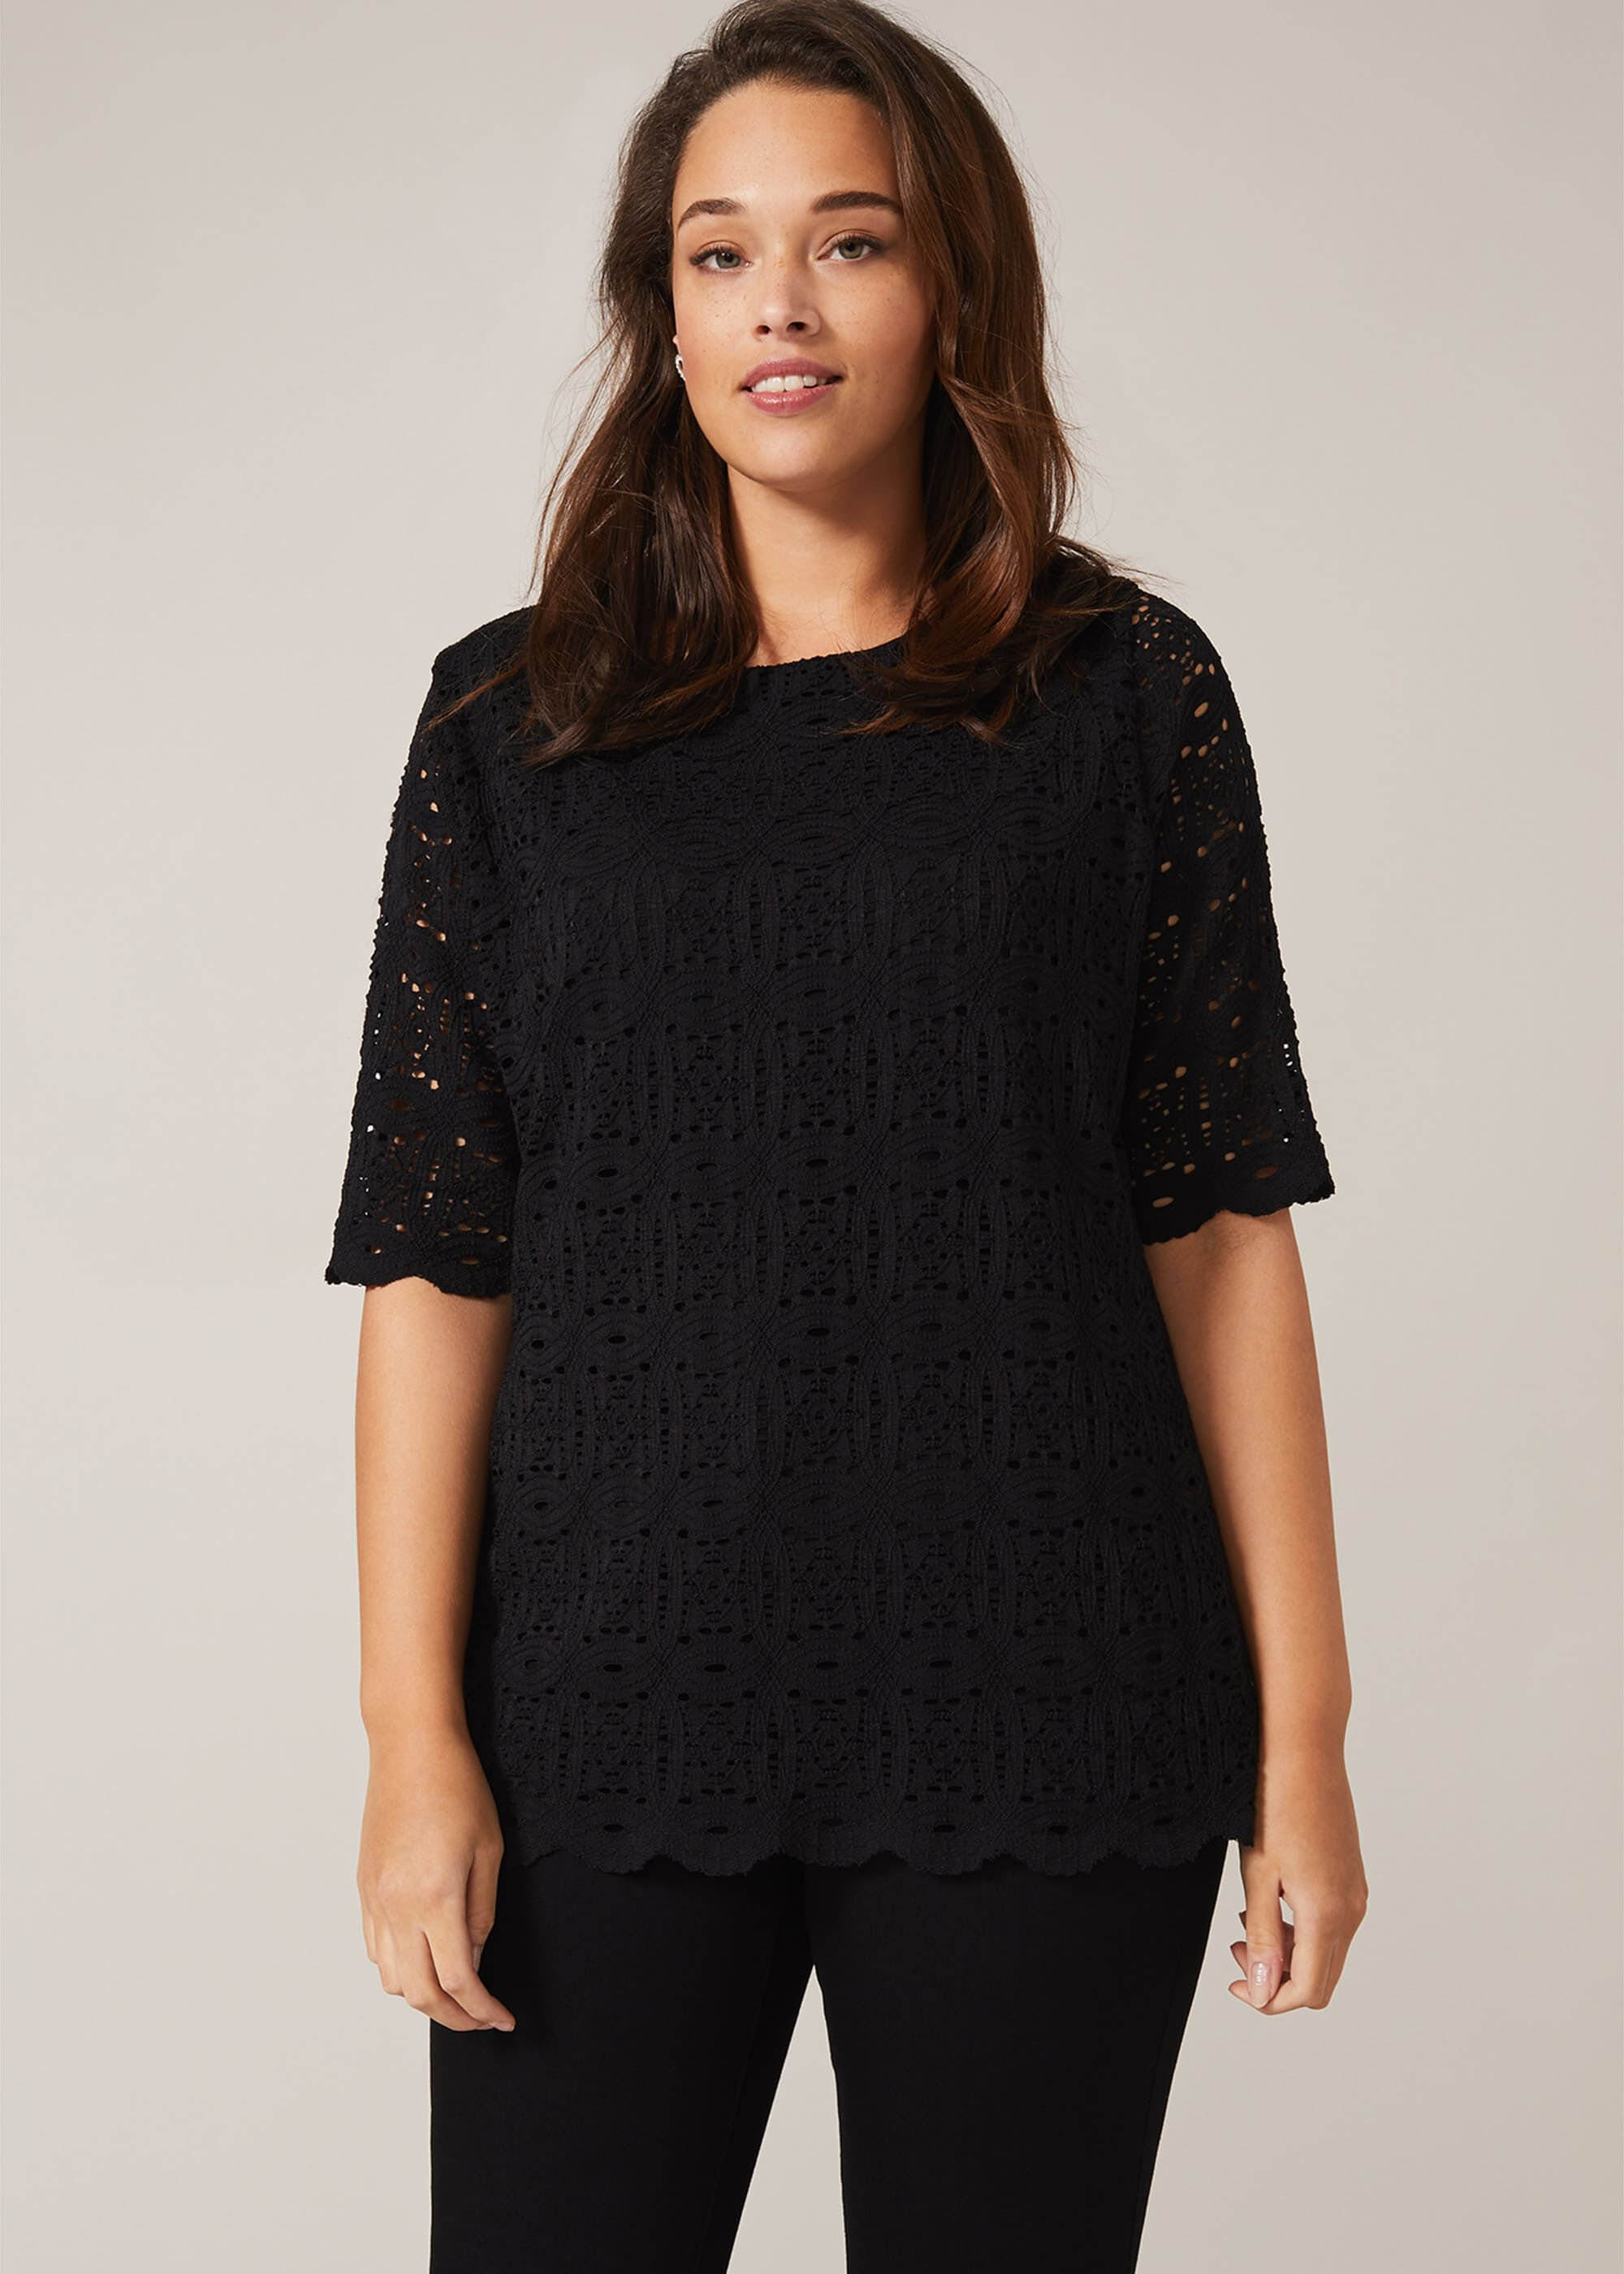 Studio 8 Louisa Lace Top, Black, Tops